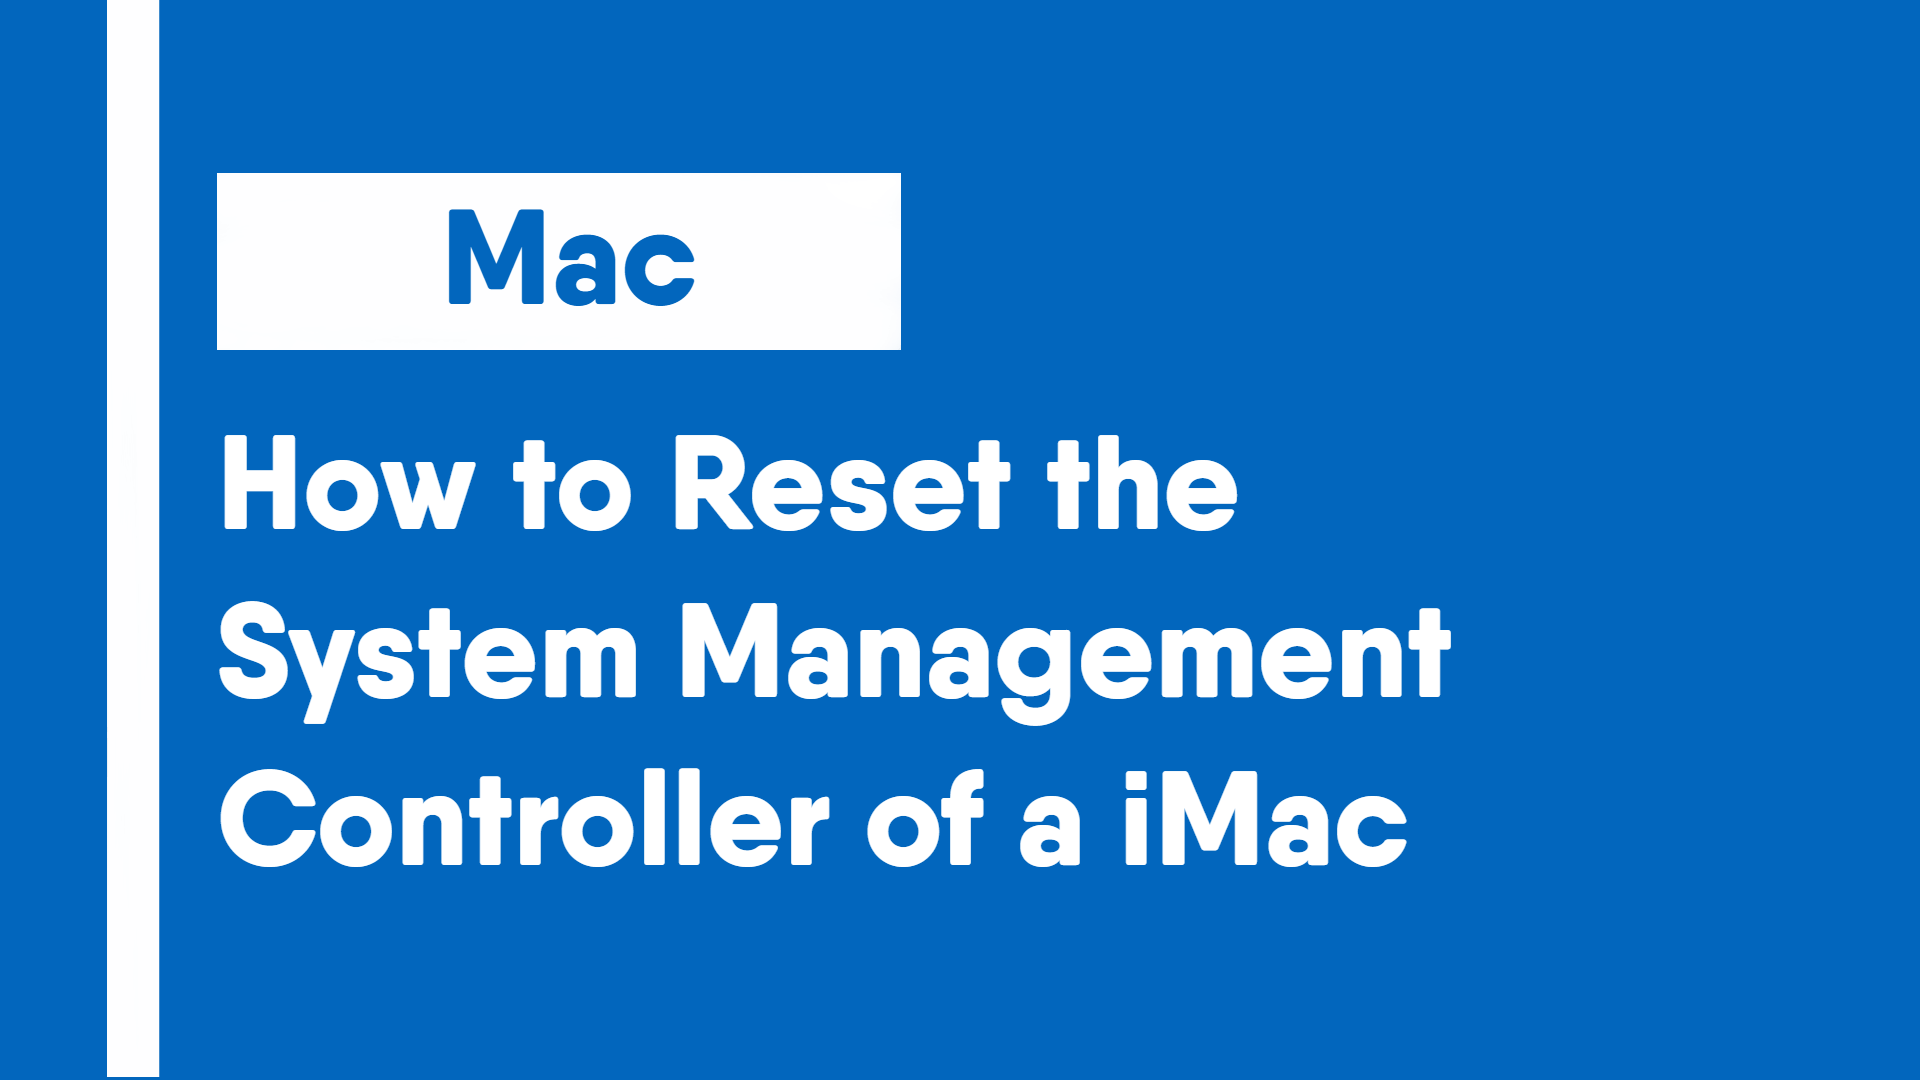 How to Reset the System Management Controller of a iMac